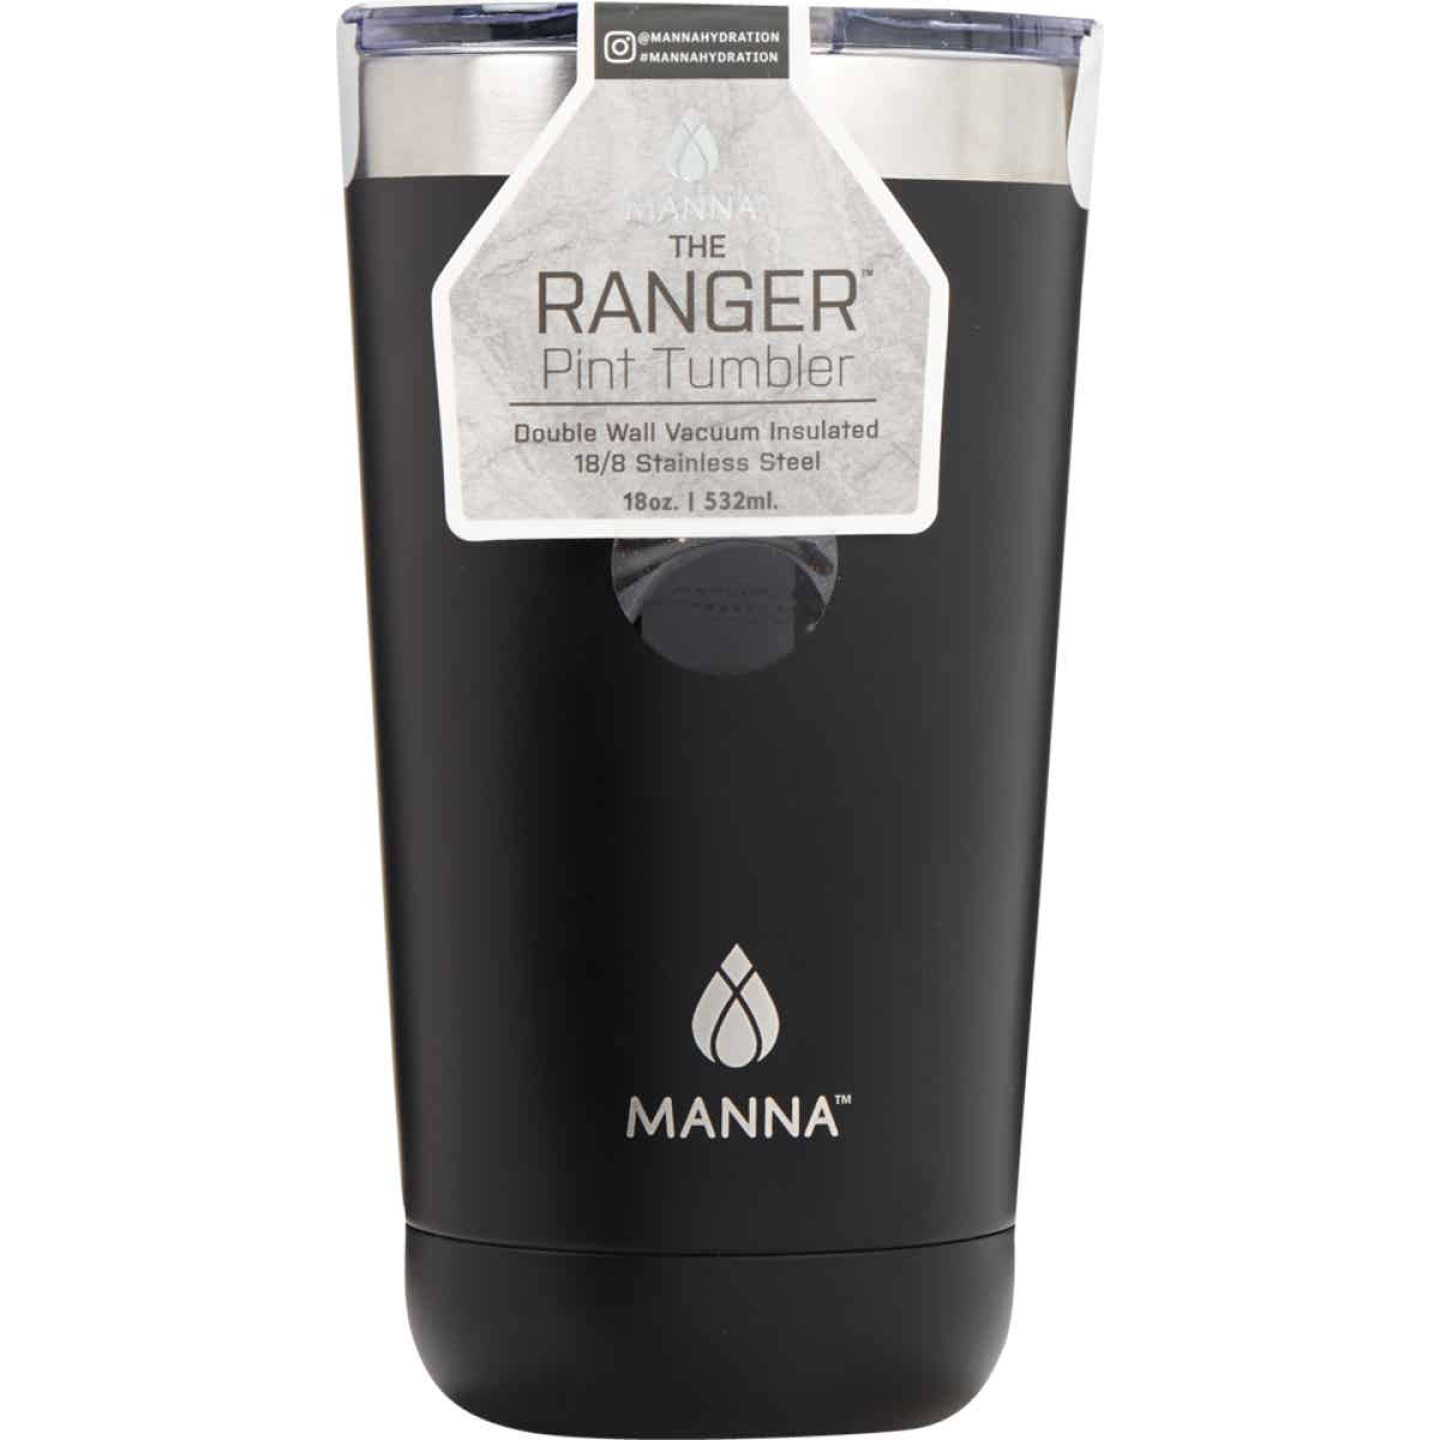 Manna Ranger 18 Oz. Onyx Black Insulated Tumbler Image 1